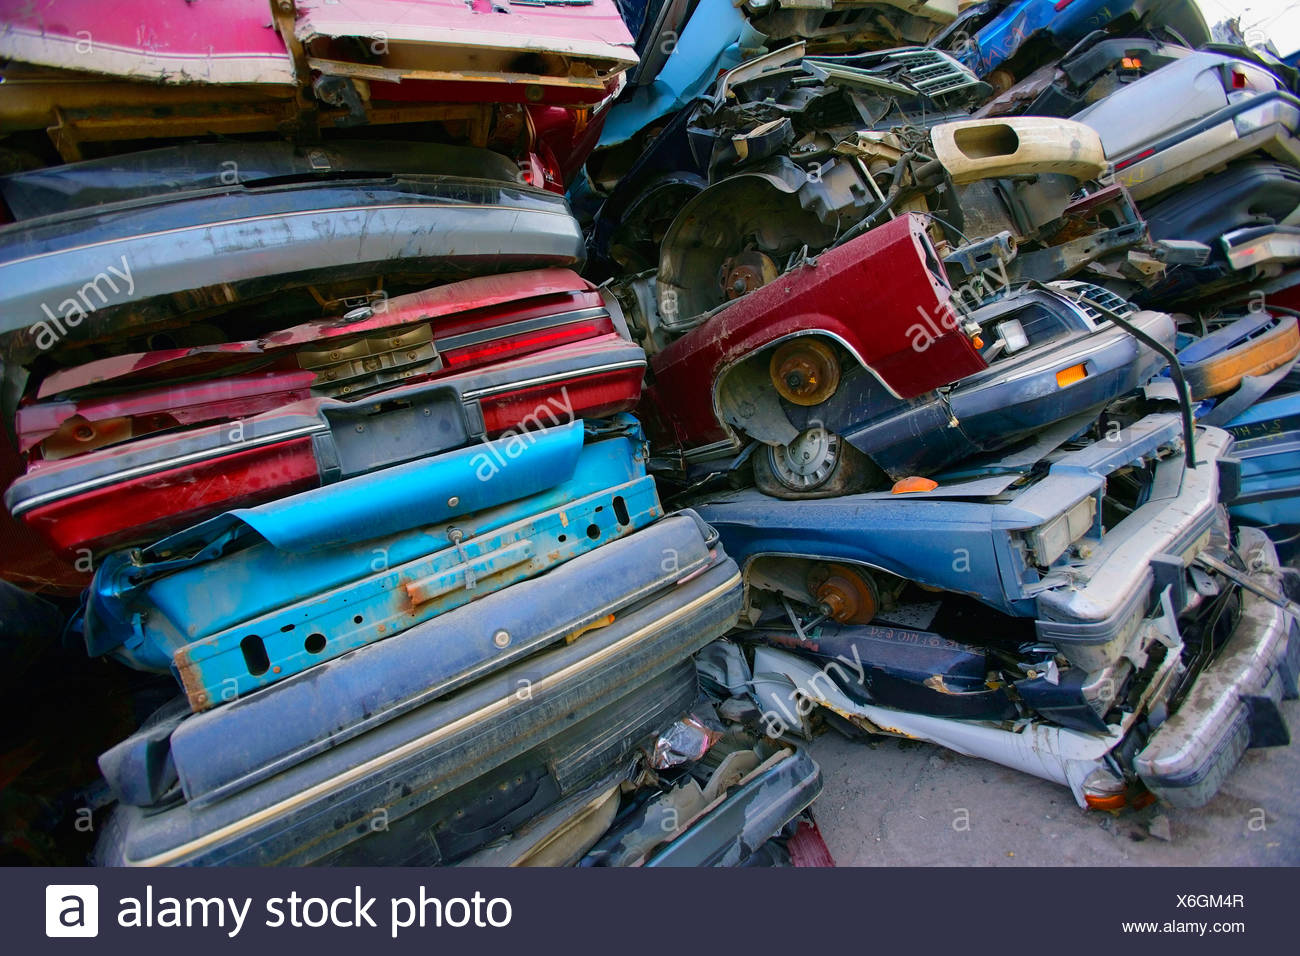 Cars Scrap Yard Stock Photos & Cars Scrap Yard Stock Images - Alamy